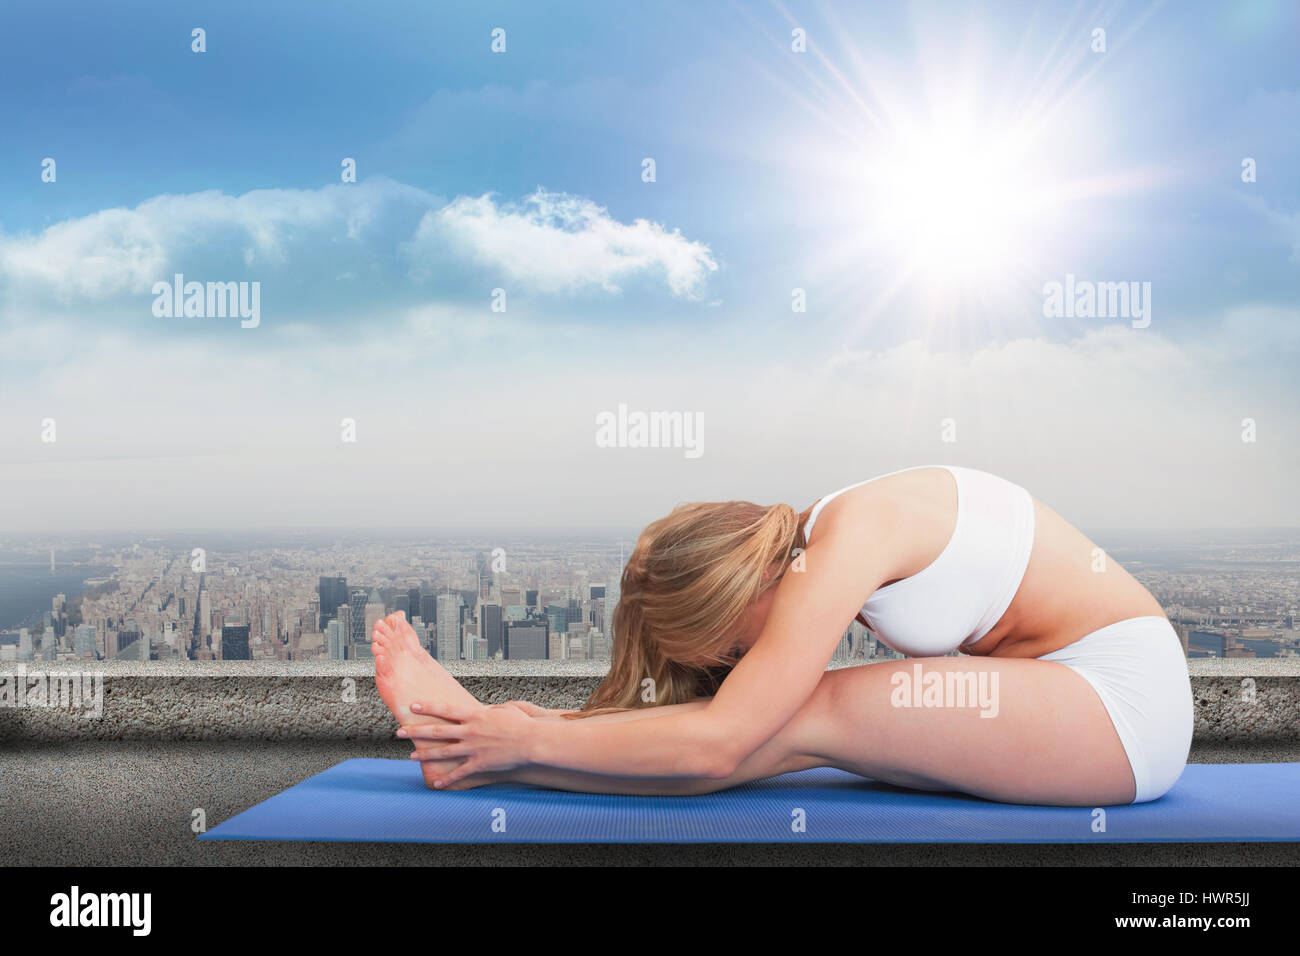 Side view of woman doing the paschimottanasana pose against balcony overlooking city - Stock Image